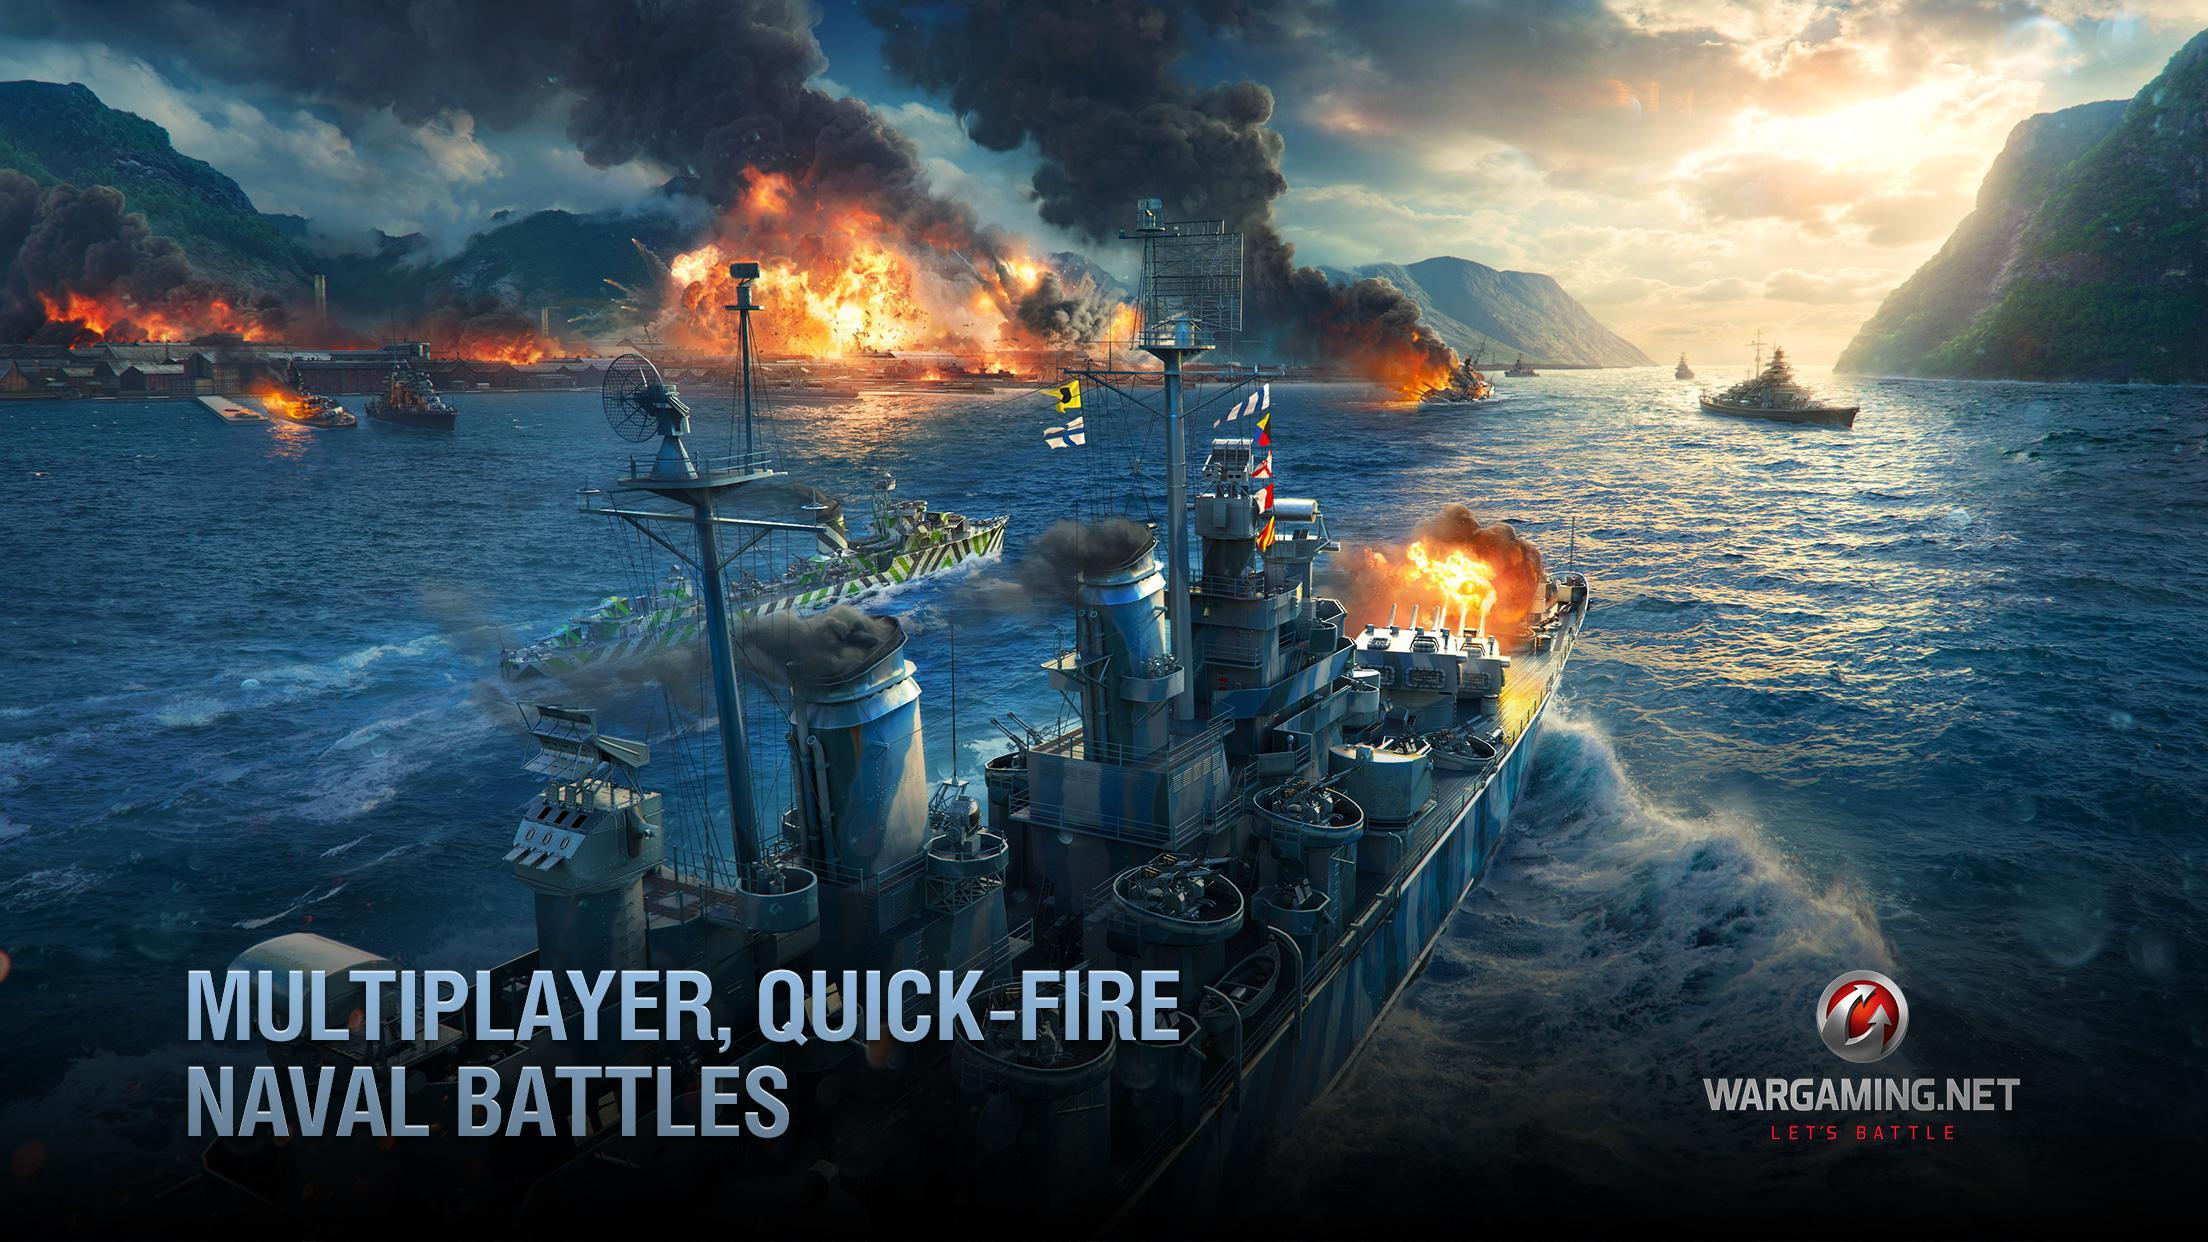 World of Warships Blitz: Gunship Action War Game 3.3.0 Screenshot 16